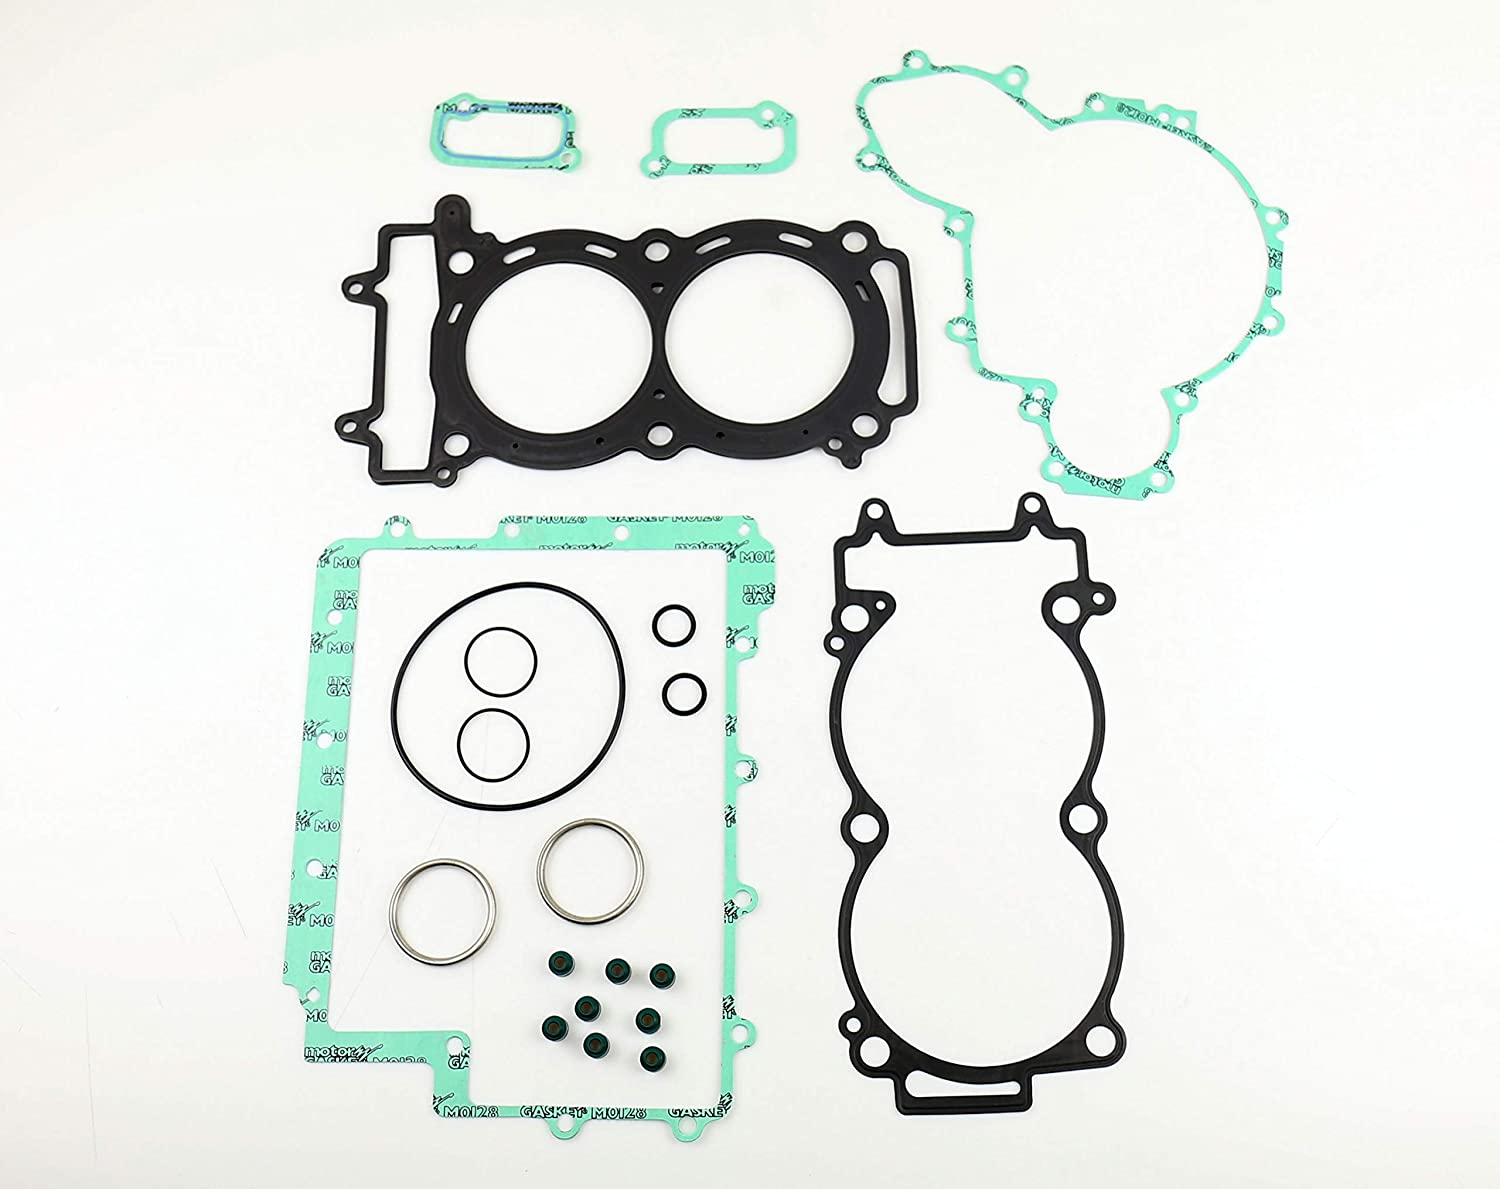 rzr parts diagram 12 amazon com athena parts p400427870018 complete engine gasket kit  engine gasket kit